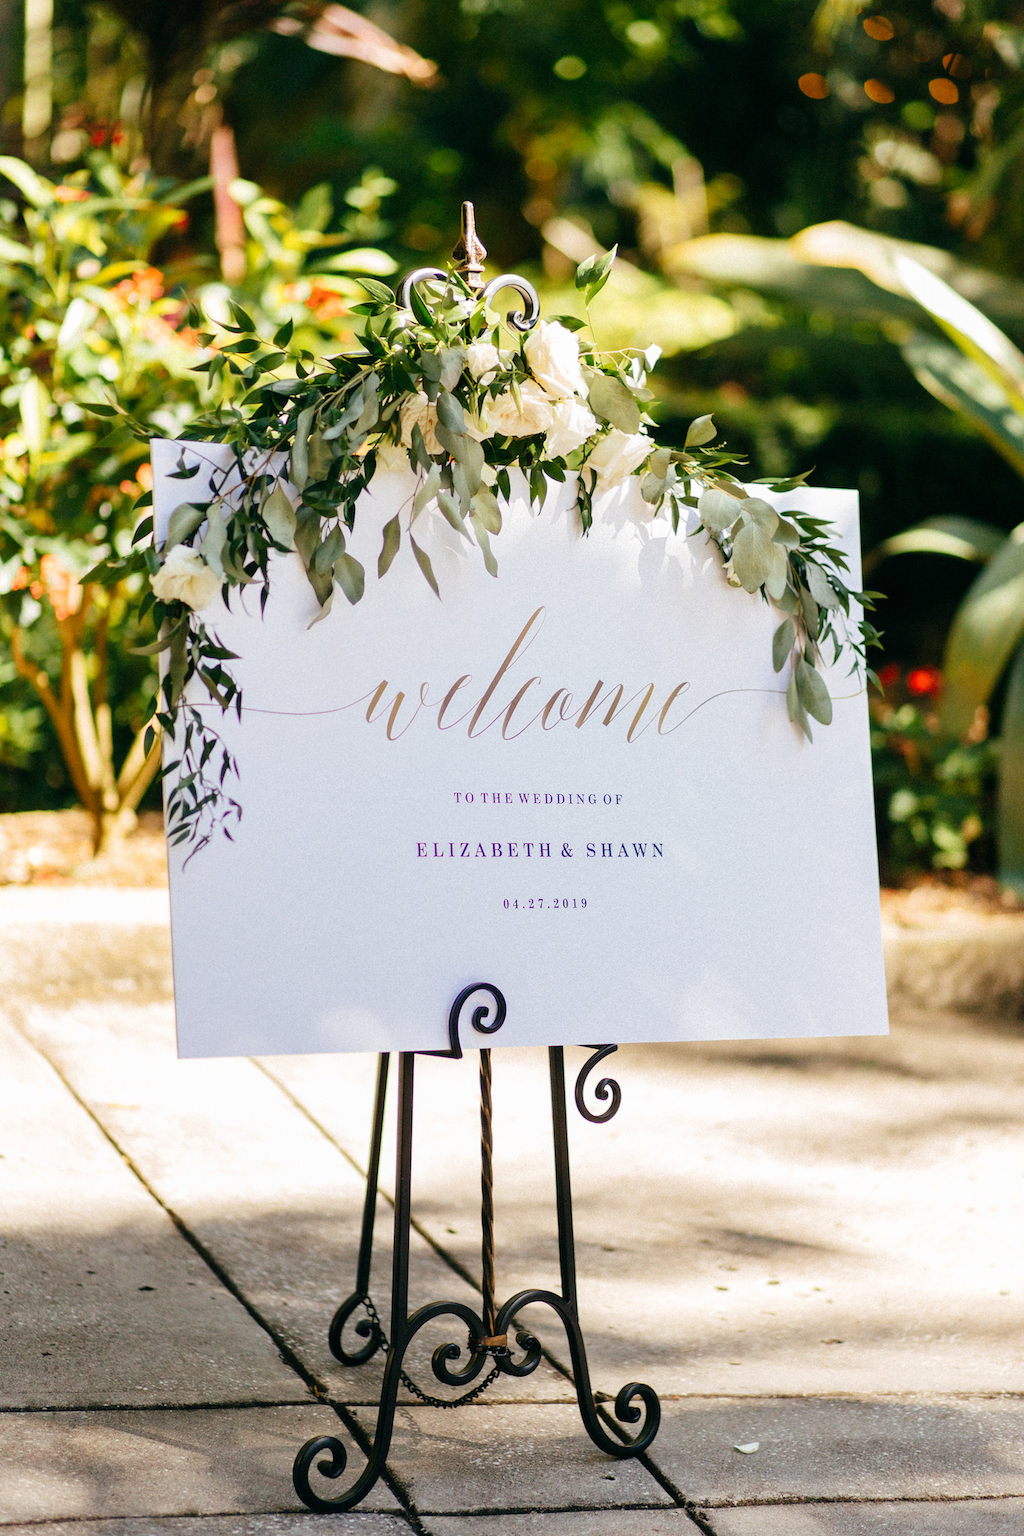 Simple Elegant Garden Inspired Wedding Ceremony White Welcome Sign with Greenery Garland and White Ivory Florals Decor